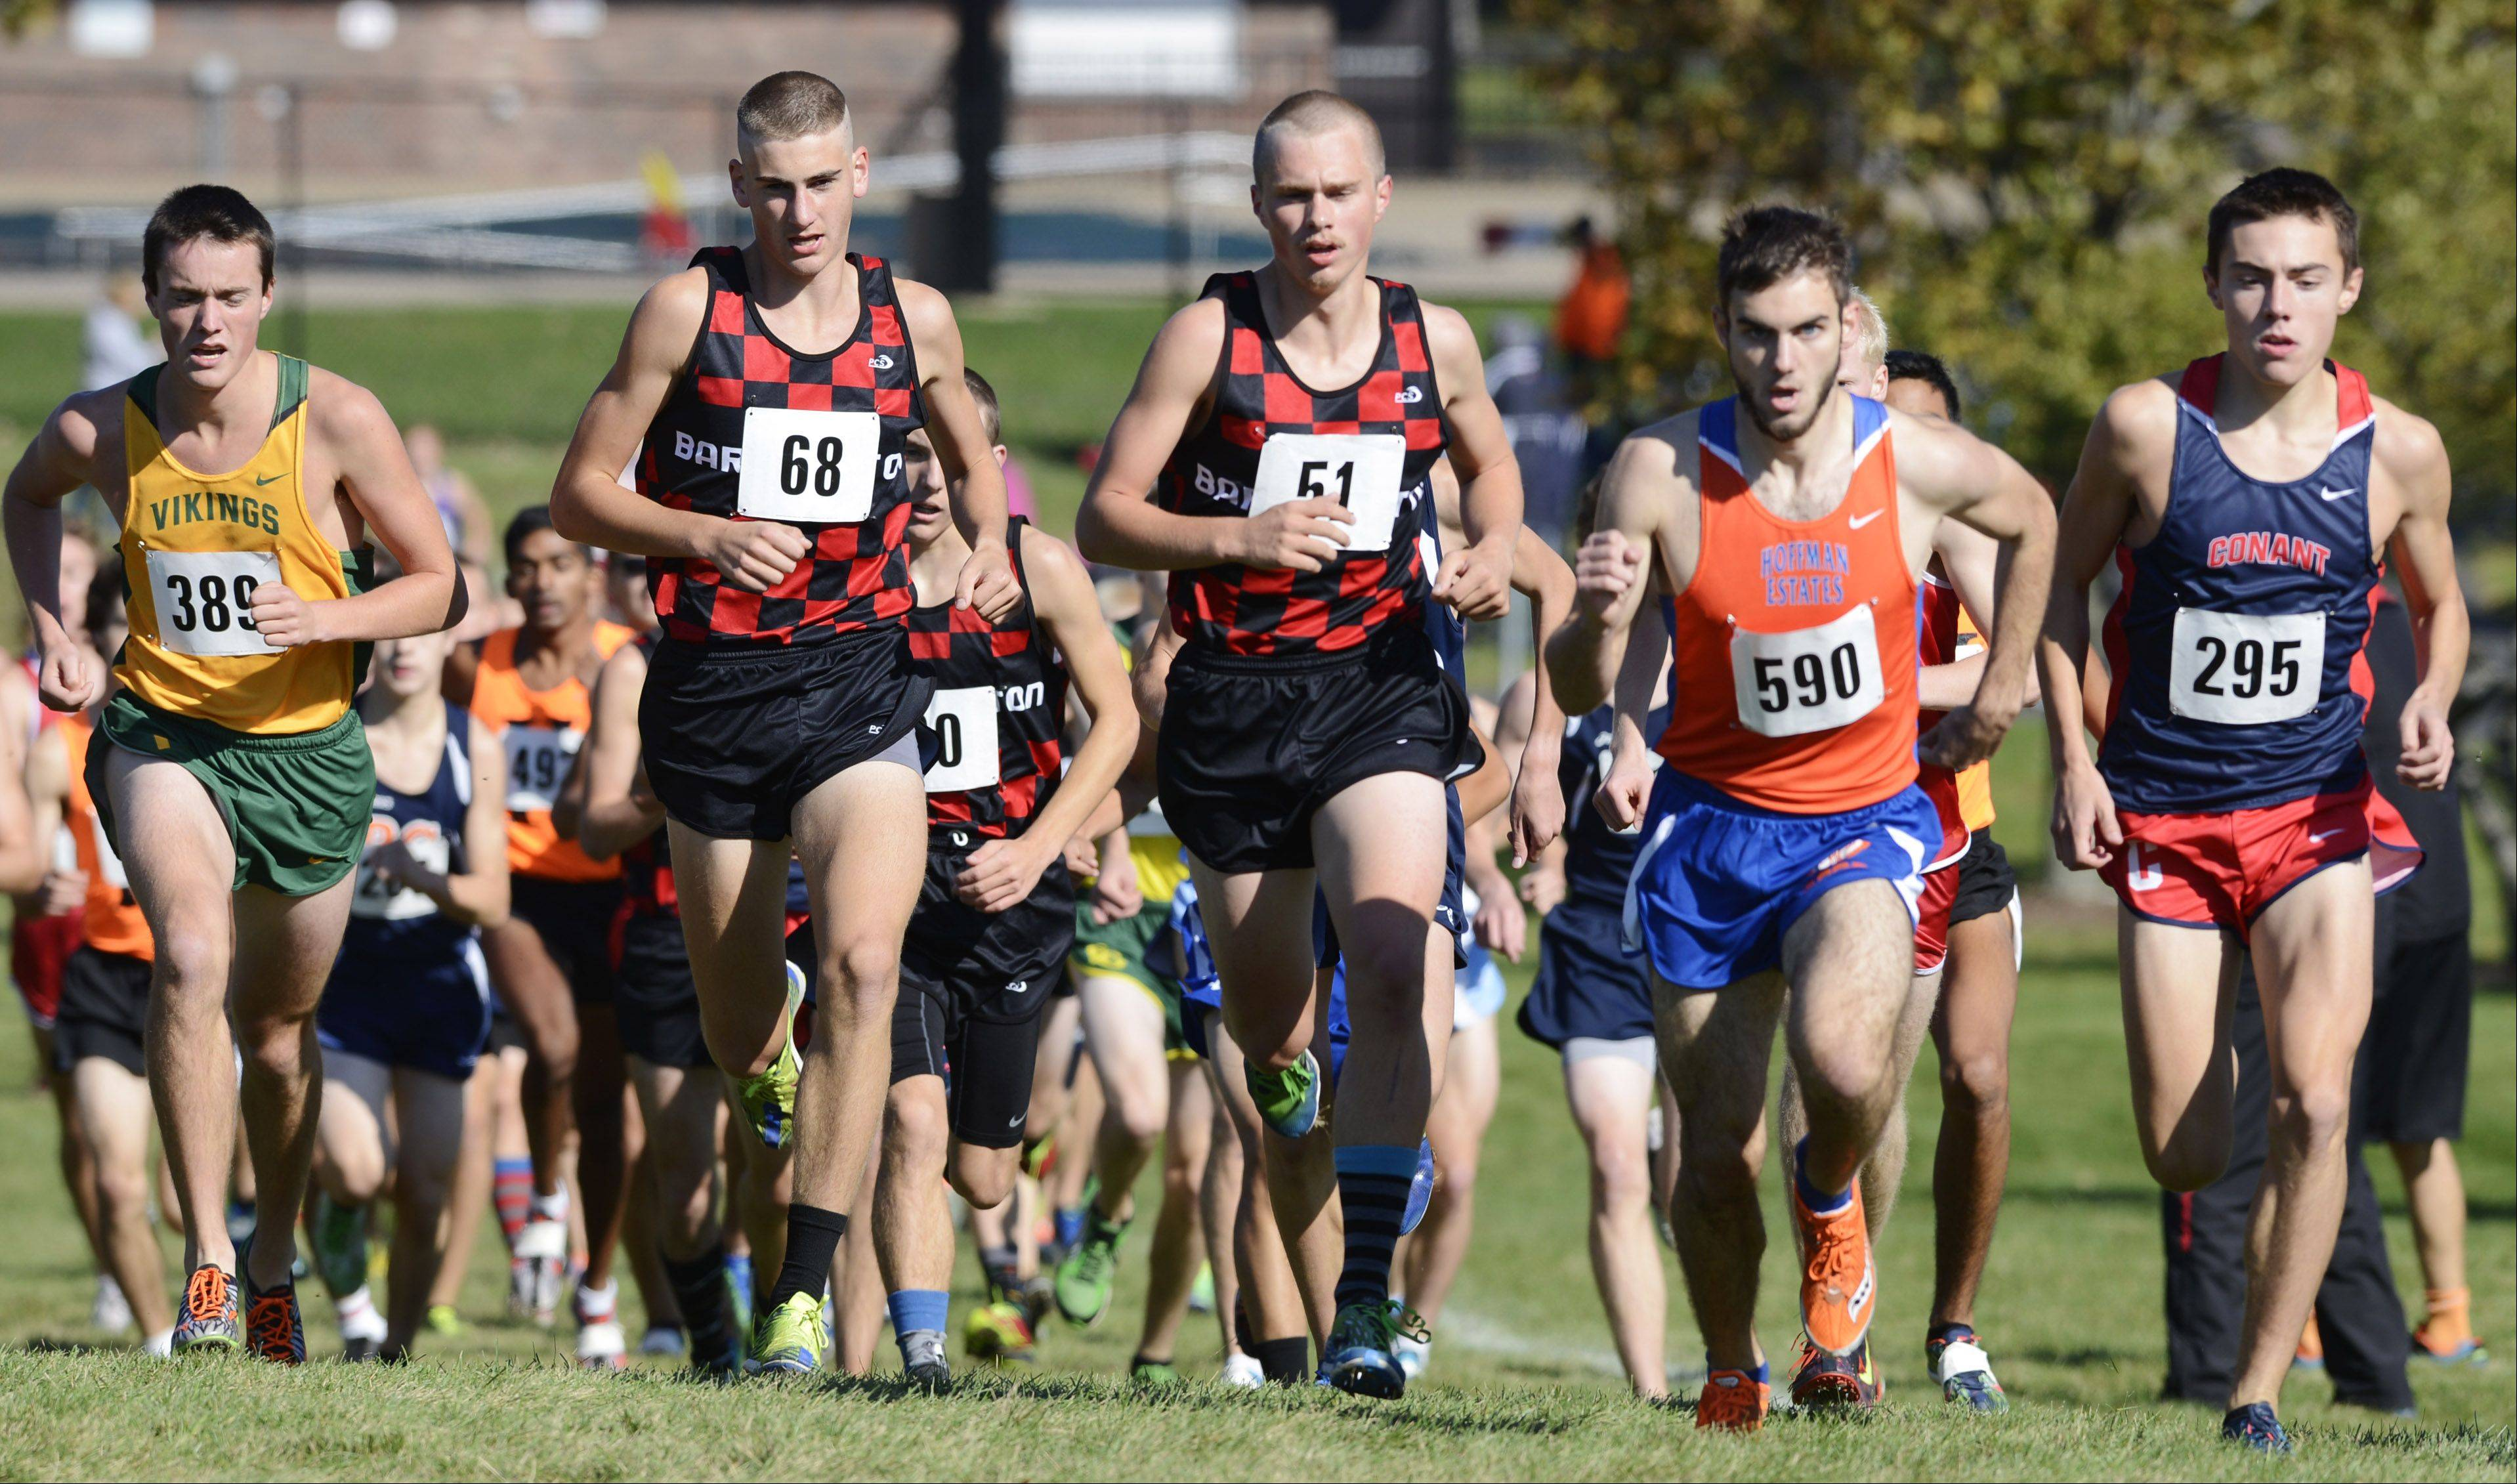 From left, Fremd�s Harrison Winter, Barrington�s Konrad Eiring and Jake Herb, Hoffman Estates�s Billy Thomas and Conant�s Zach Dale run side-by-side early during the Mid-Suburban League cross country meet at Willow Stream Park in Buffalo Grove on Saturday.